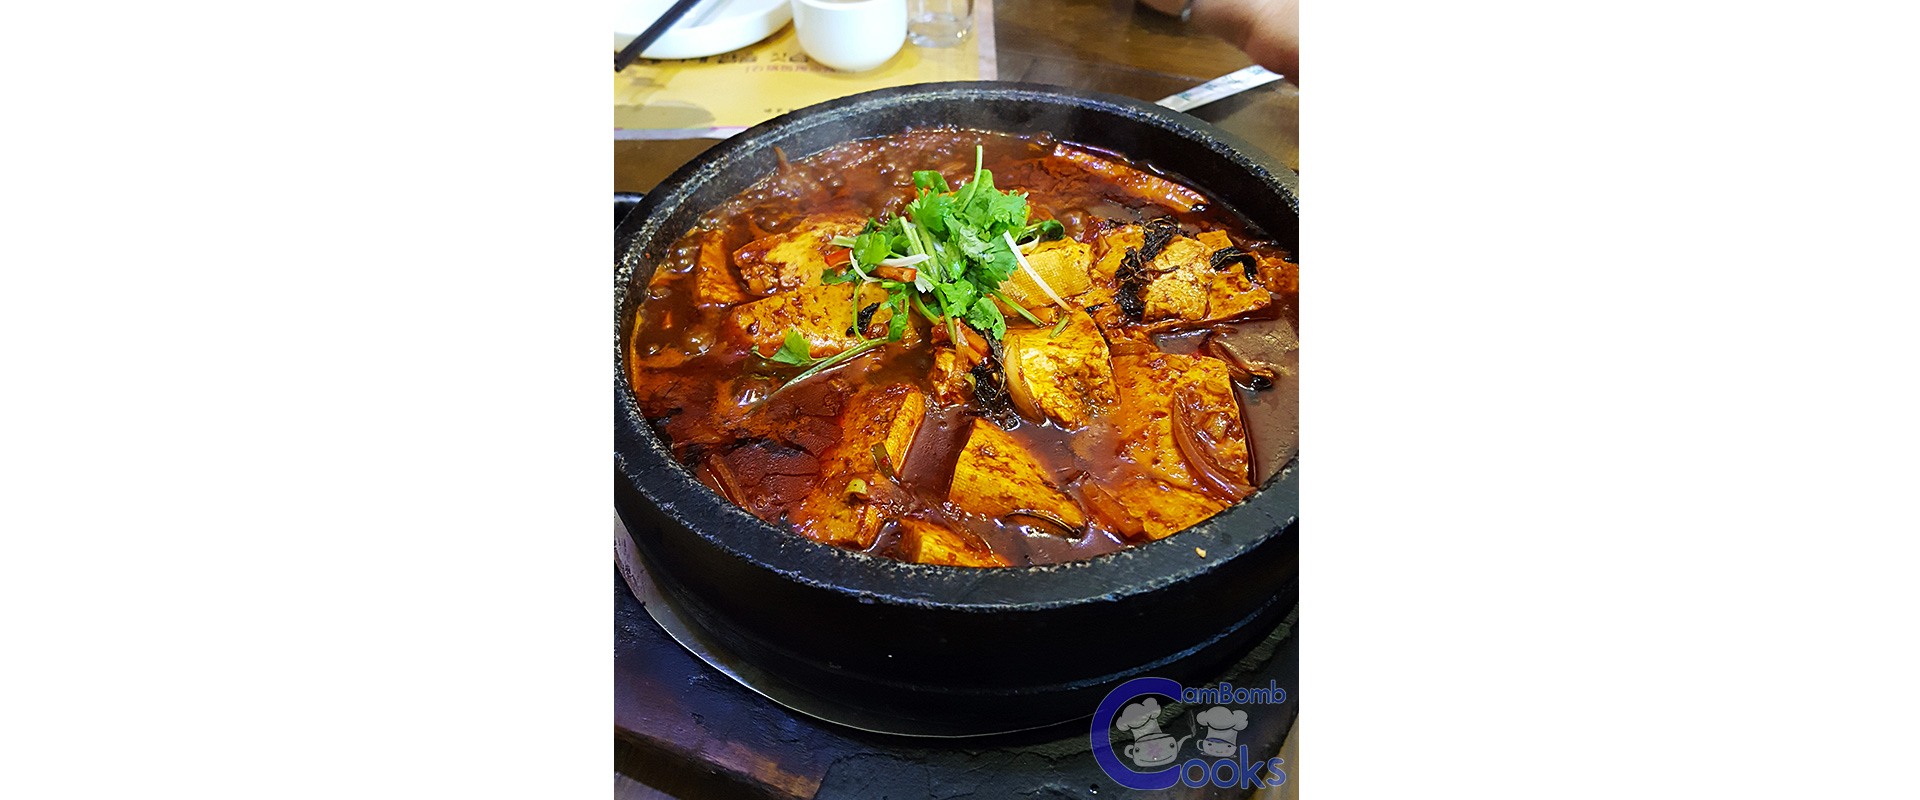 CamBomb Food Review - Spicy Korean Tofu Soup